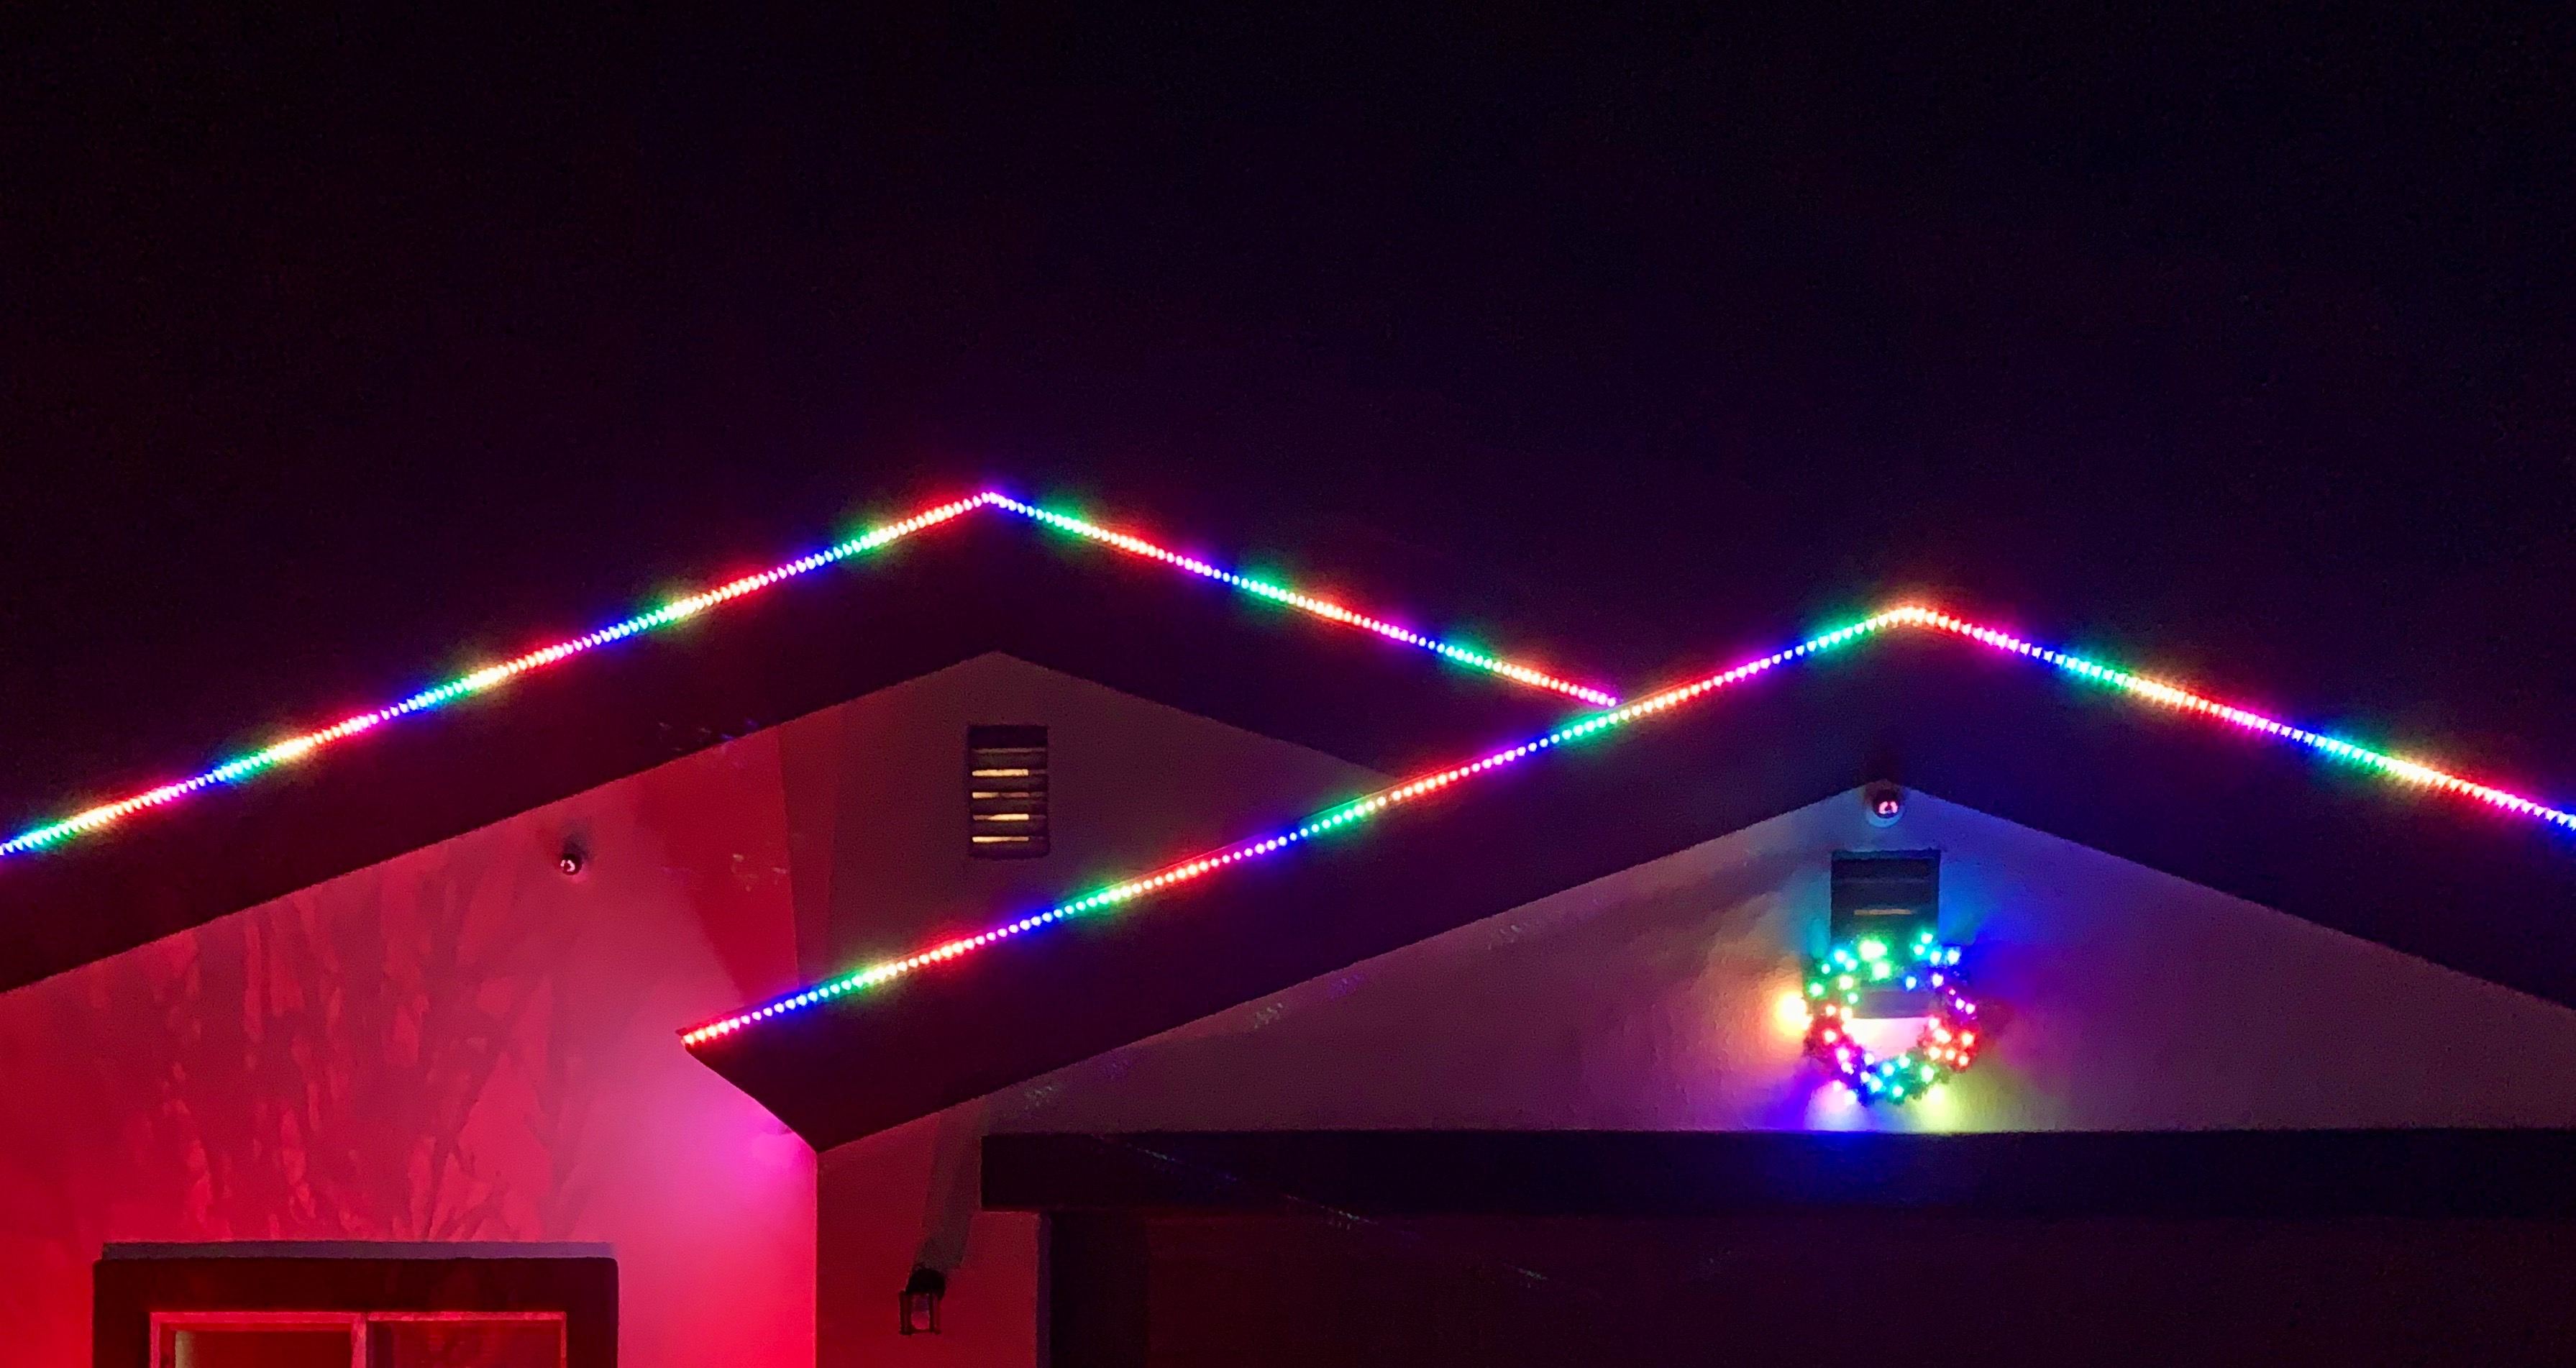 Finished wreath with WS2811 LEDs at night